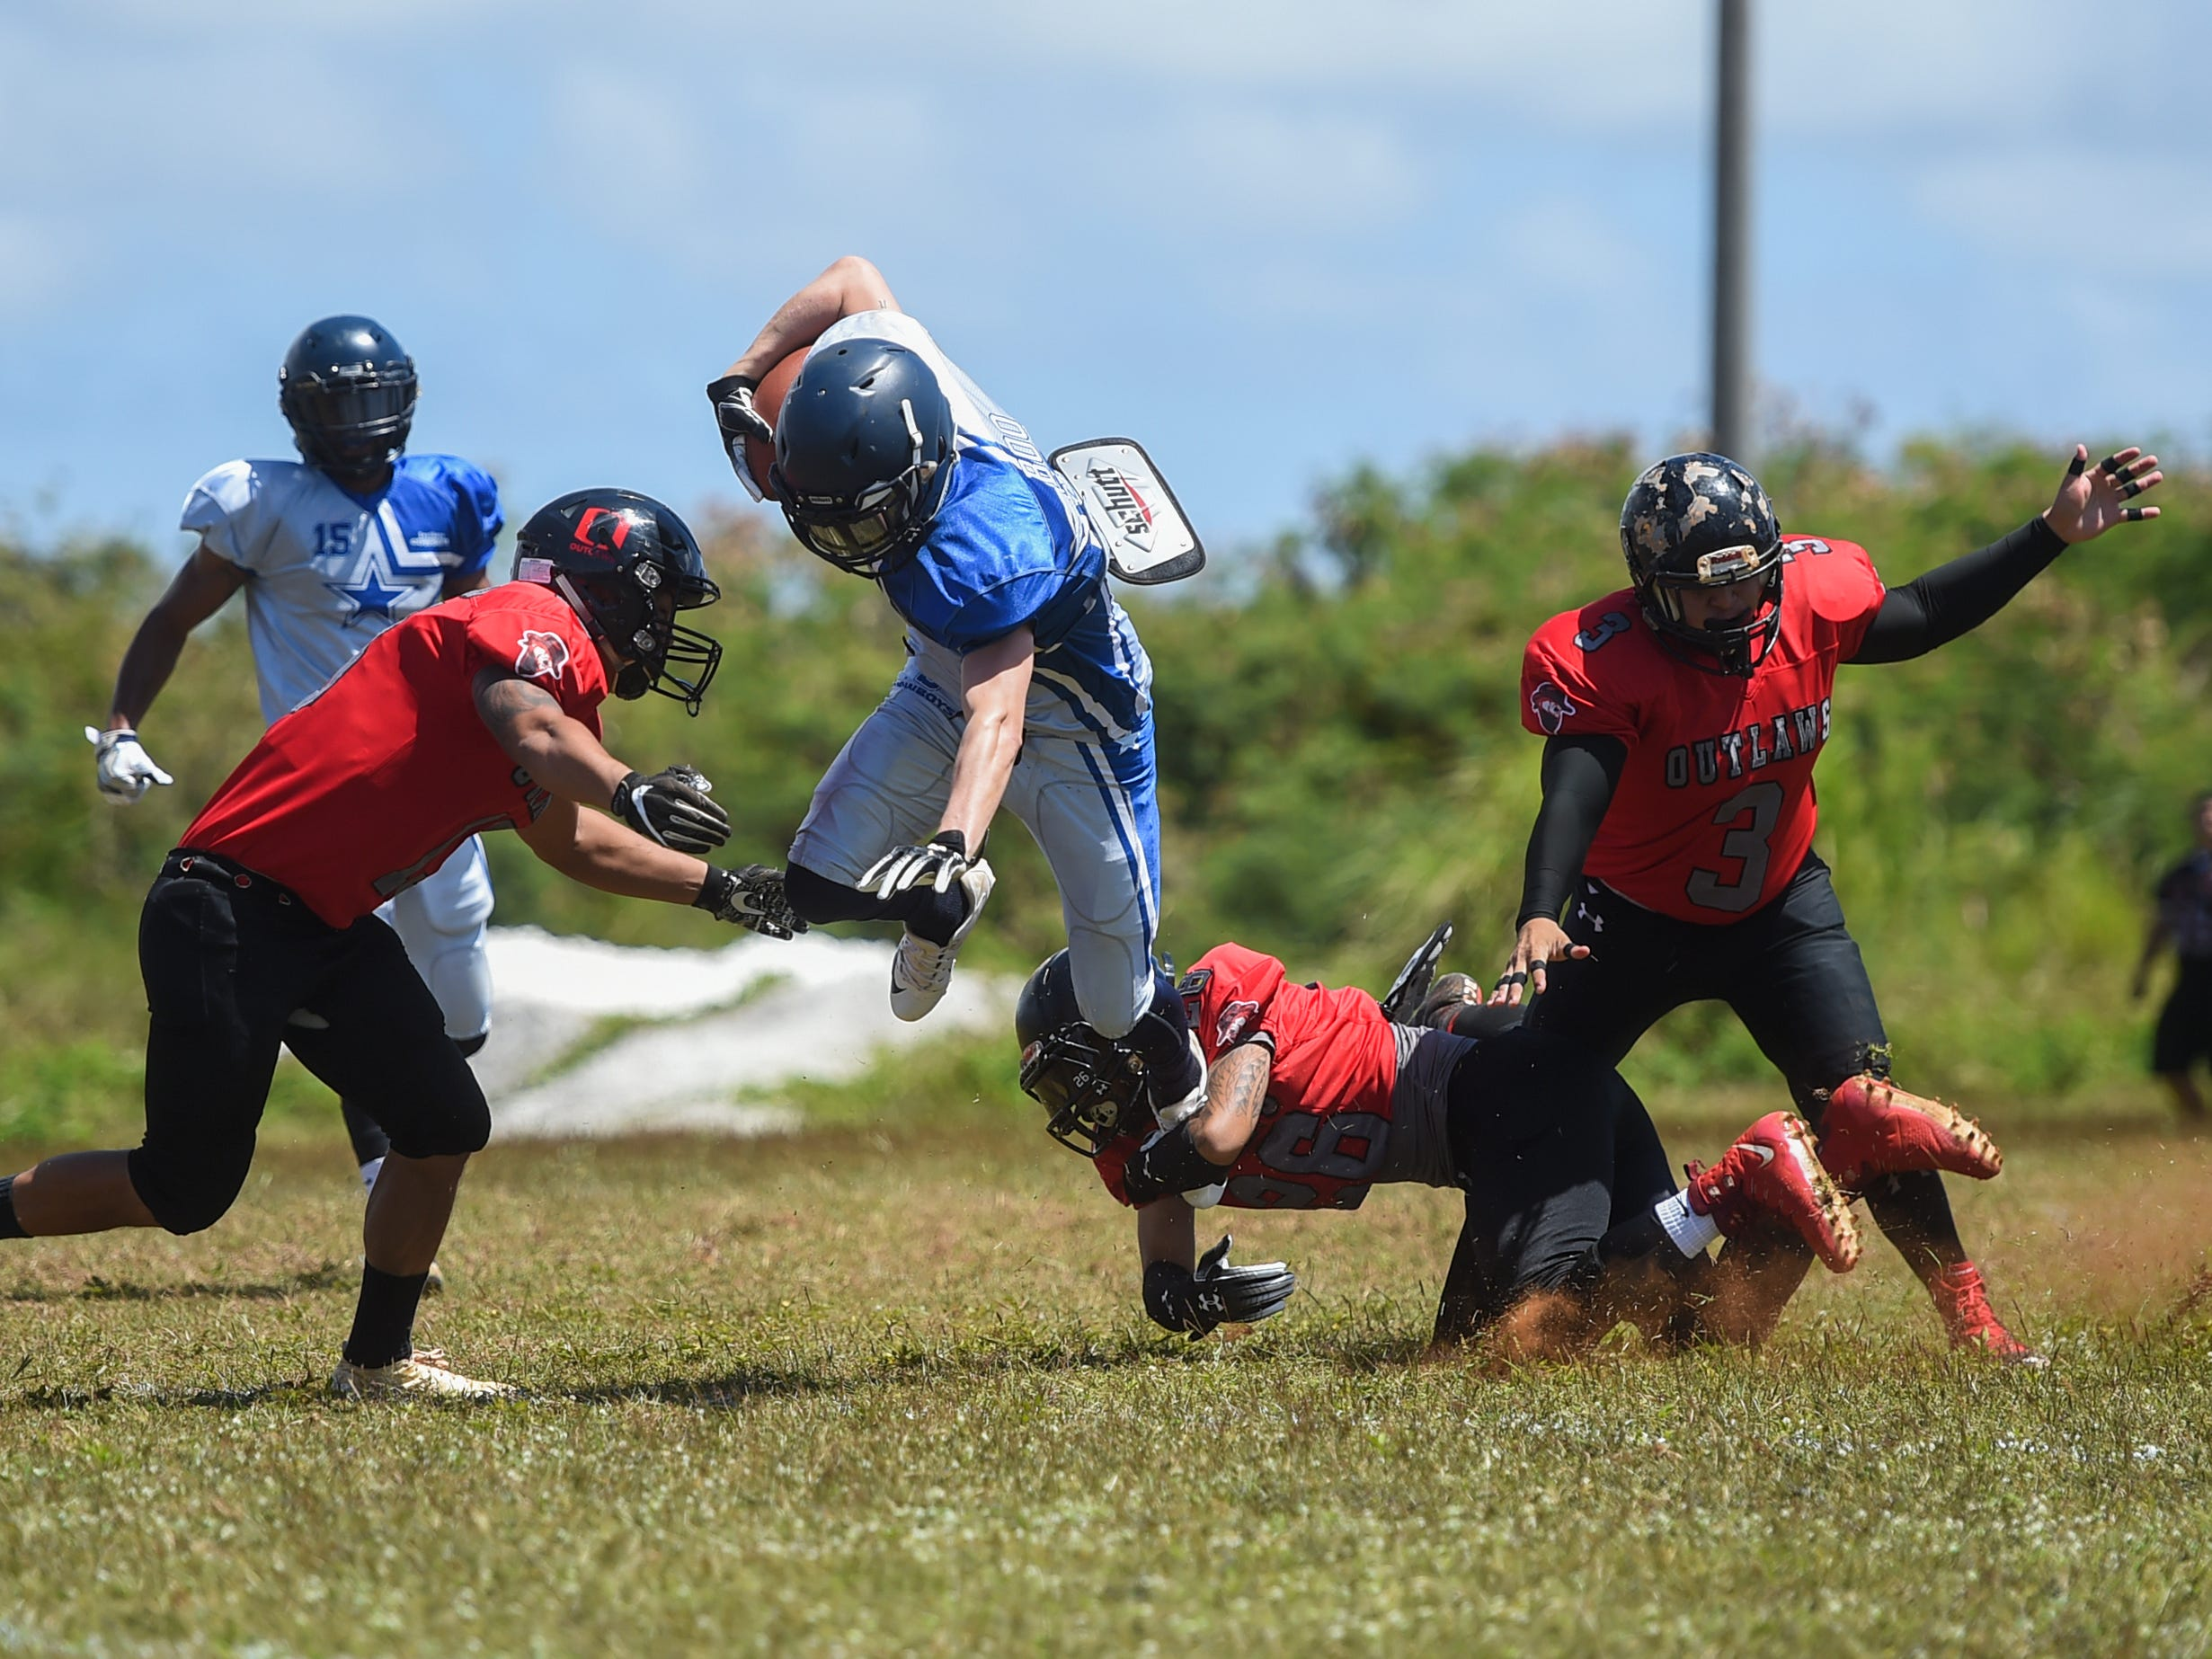 """Southern Cowboys player Chance """"Boo"""" Benefield attempts to elude a tackle by an Outlaws player during a Budweiser Guahan Varsity Football League game at Eagles Field in Mangilao, March 9, 2019."""